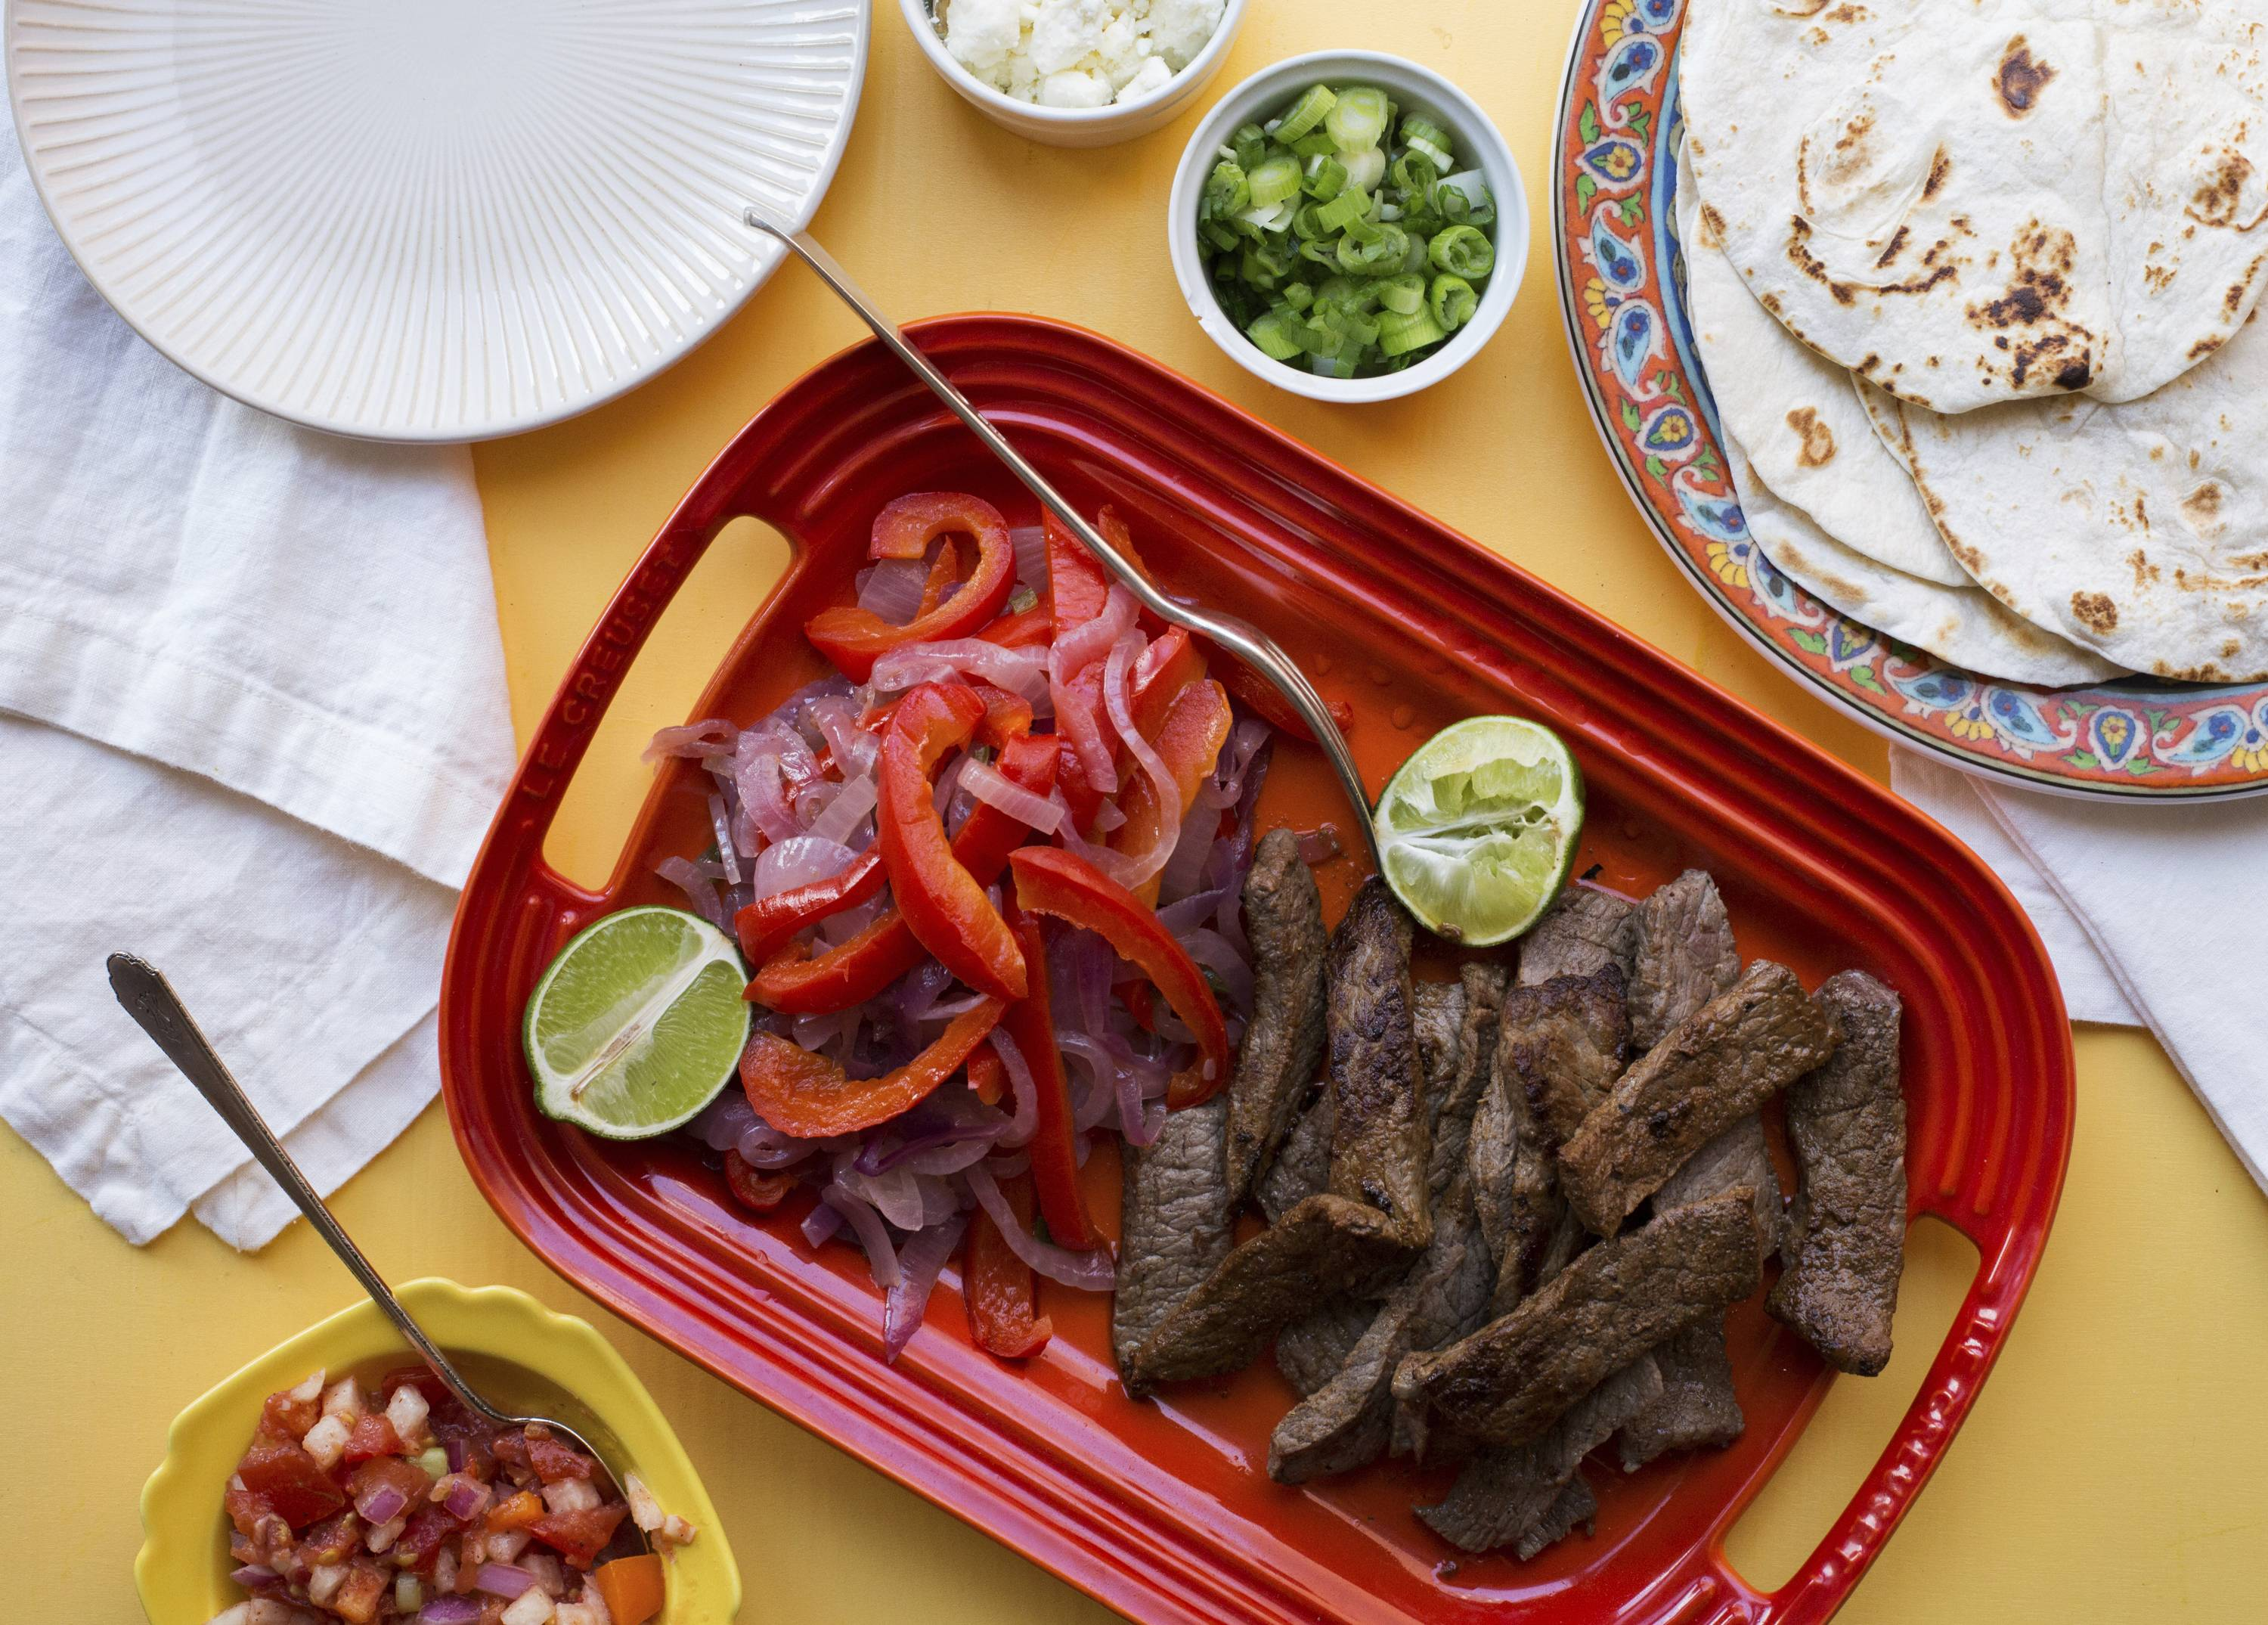 Let your guests put together their own steak fajitas on game day.